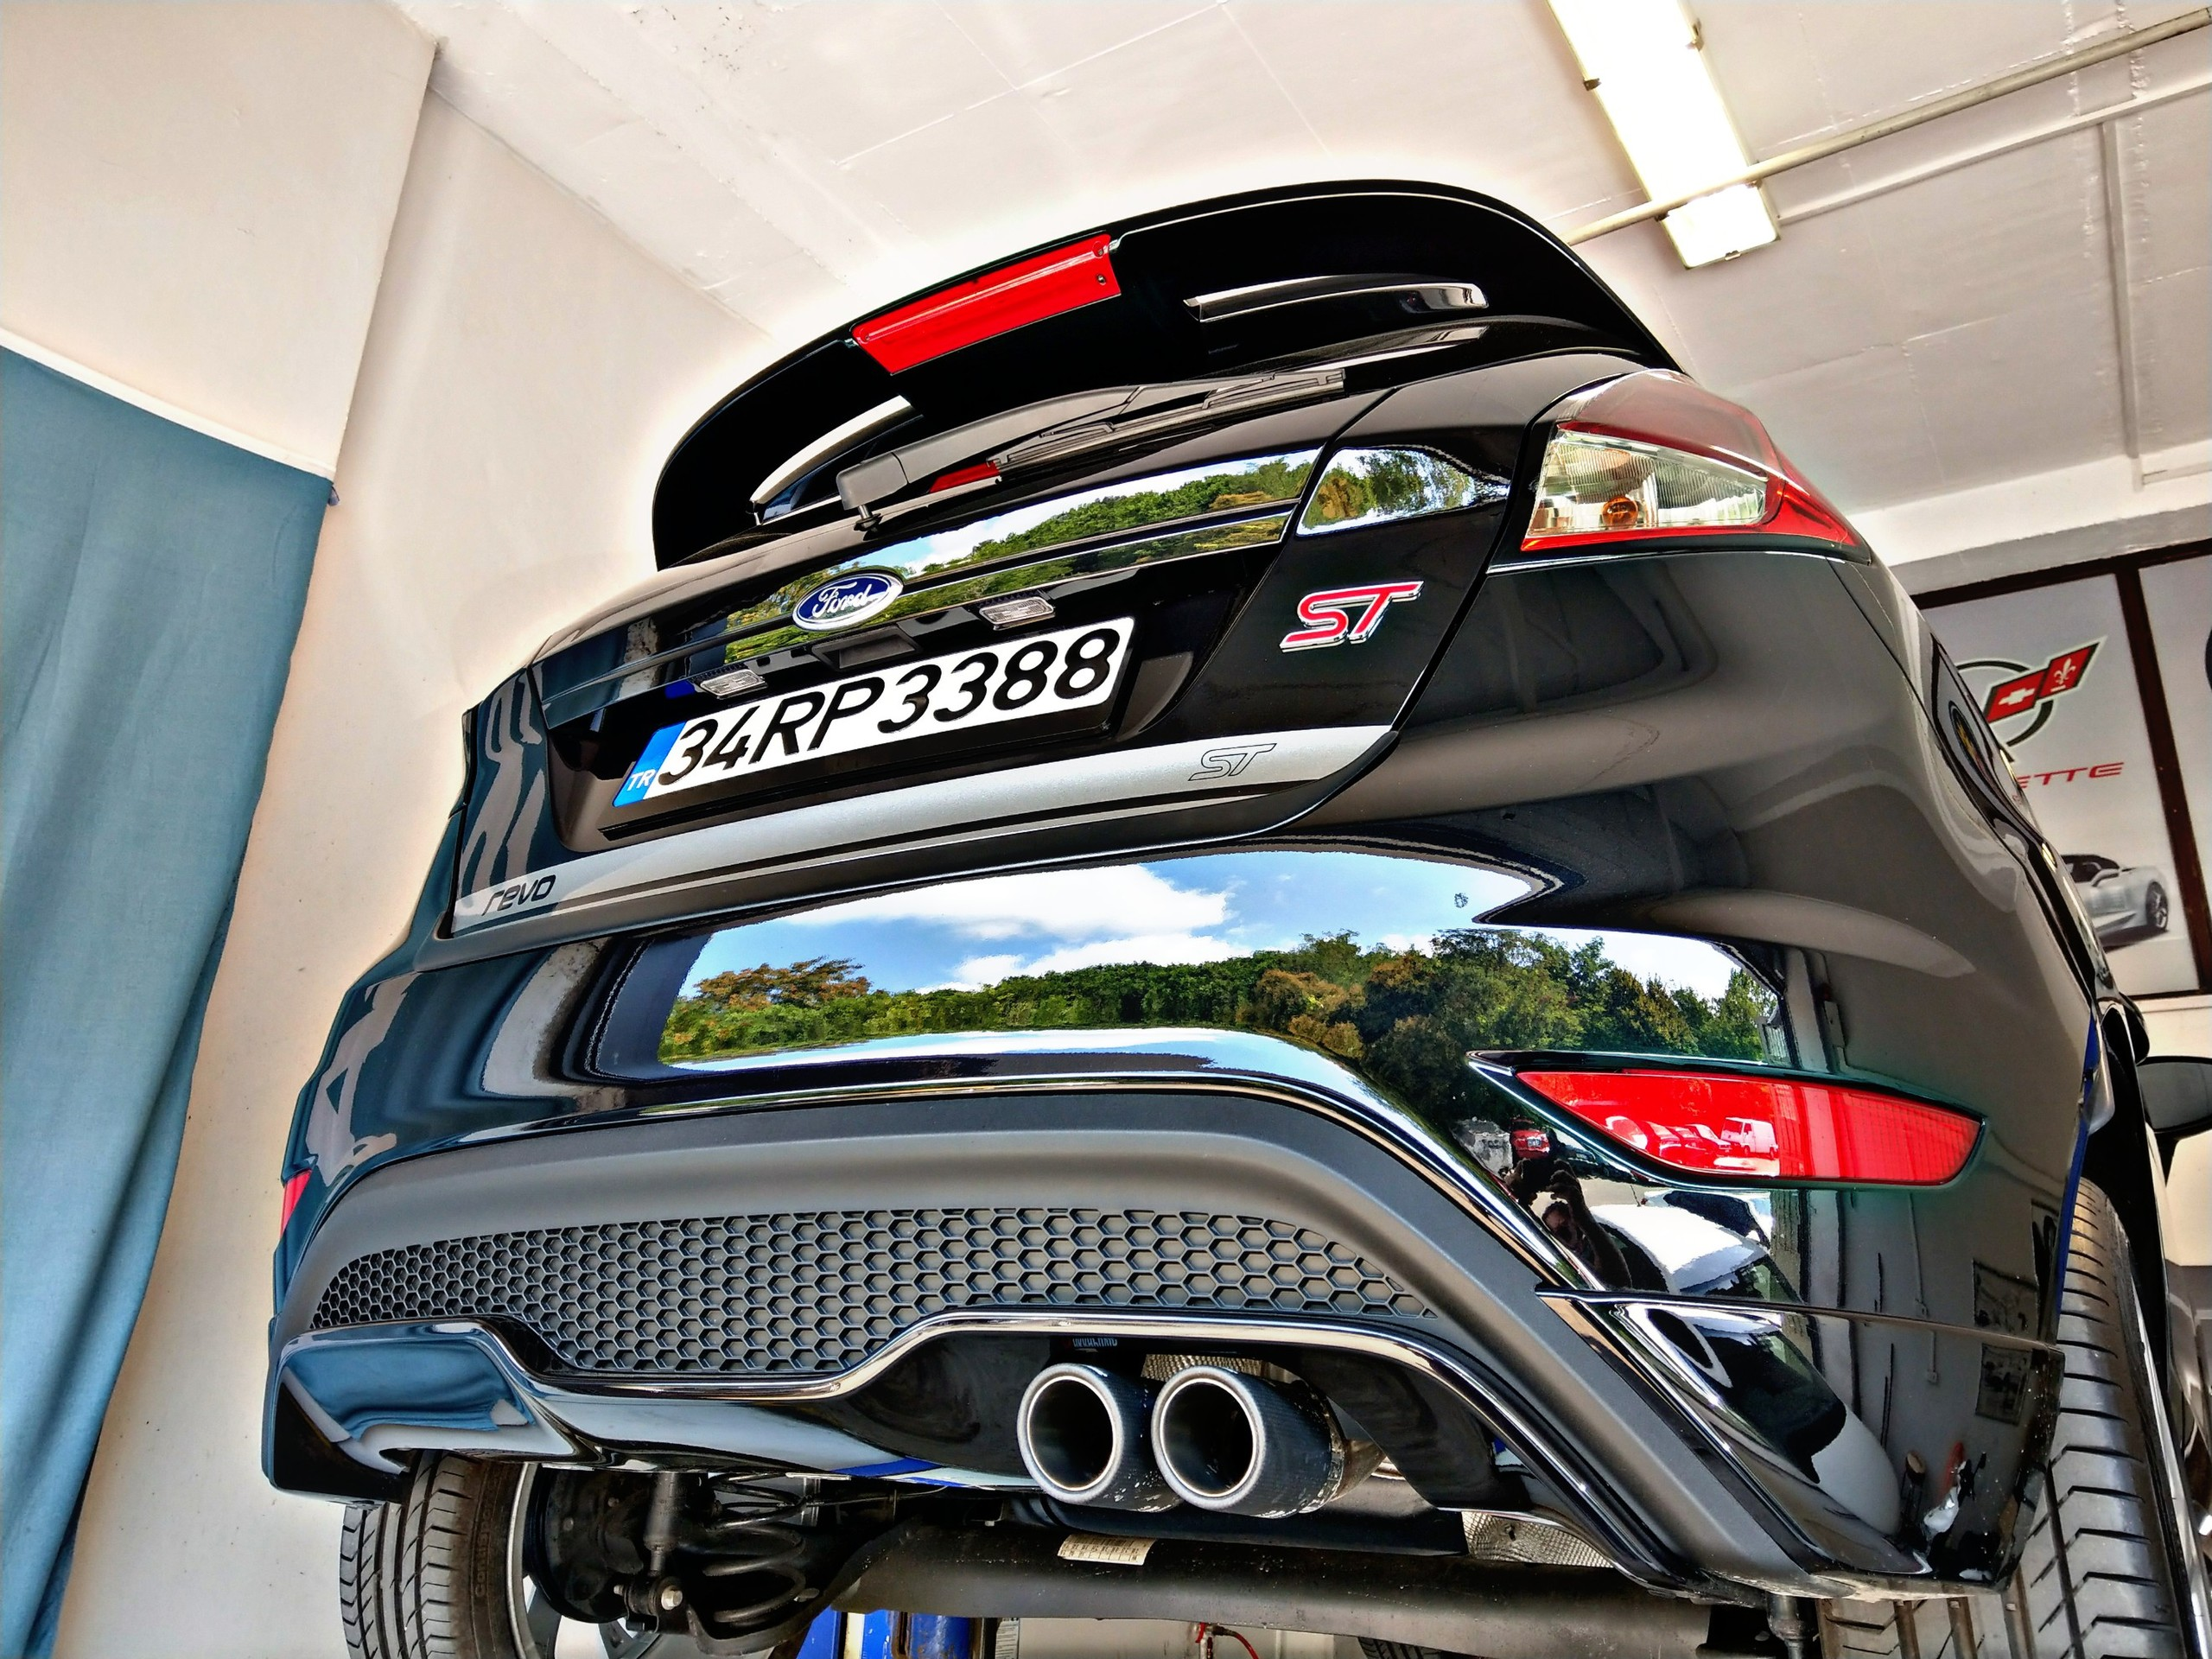 Ford Fiesta 1.0T Ecoboost Performance Upgrade Loading Complete